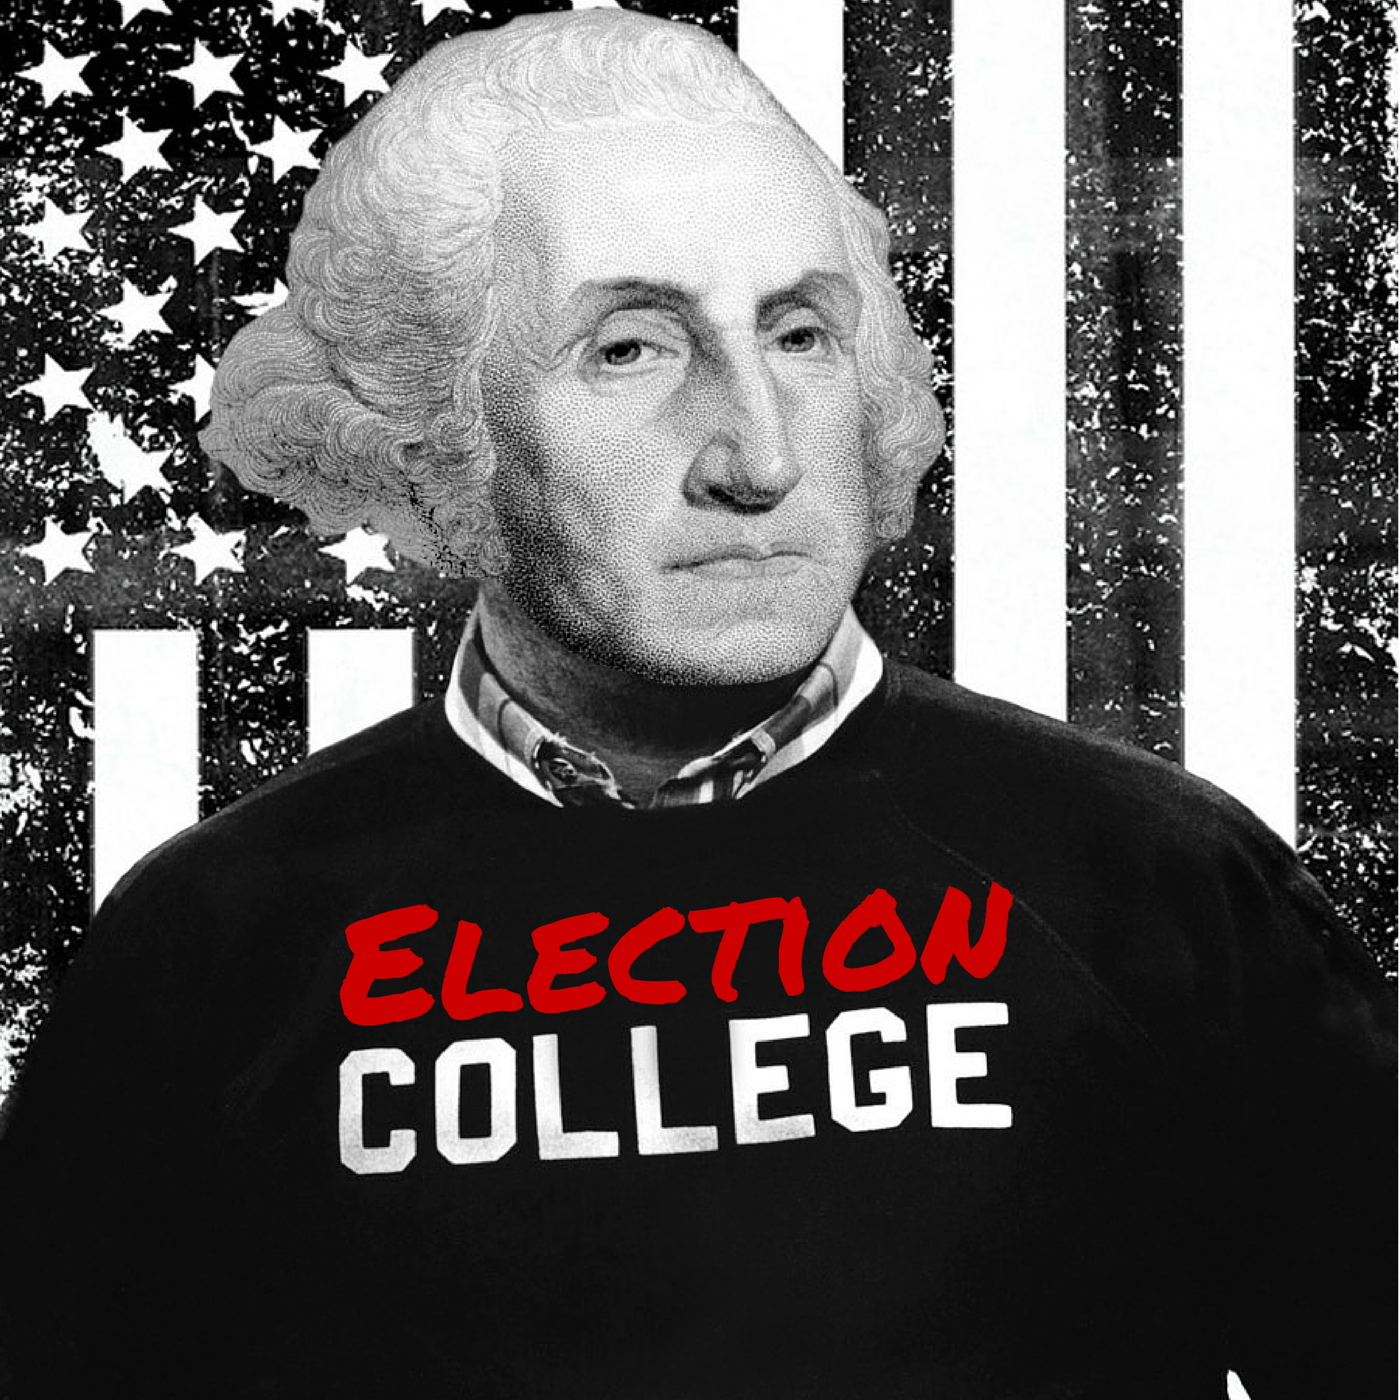 Grover Cleveland - Part 1 | Episode #256 | Election College: United States Presidential Election History